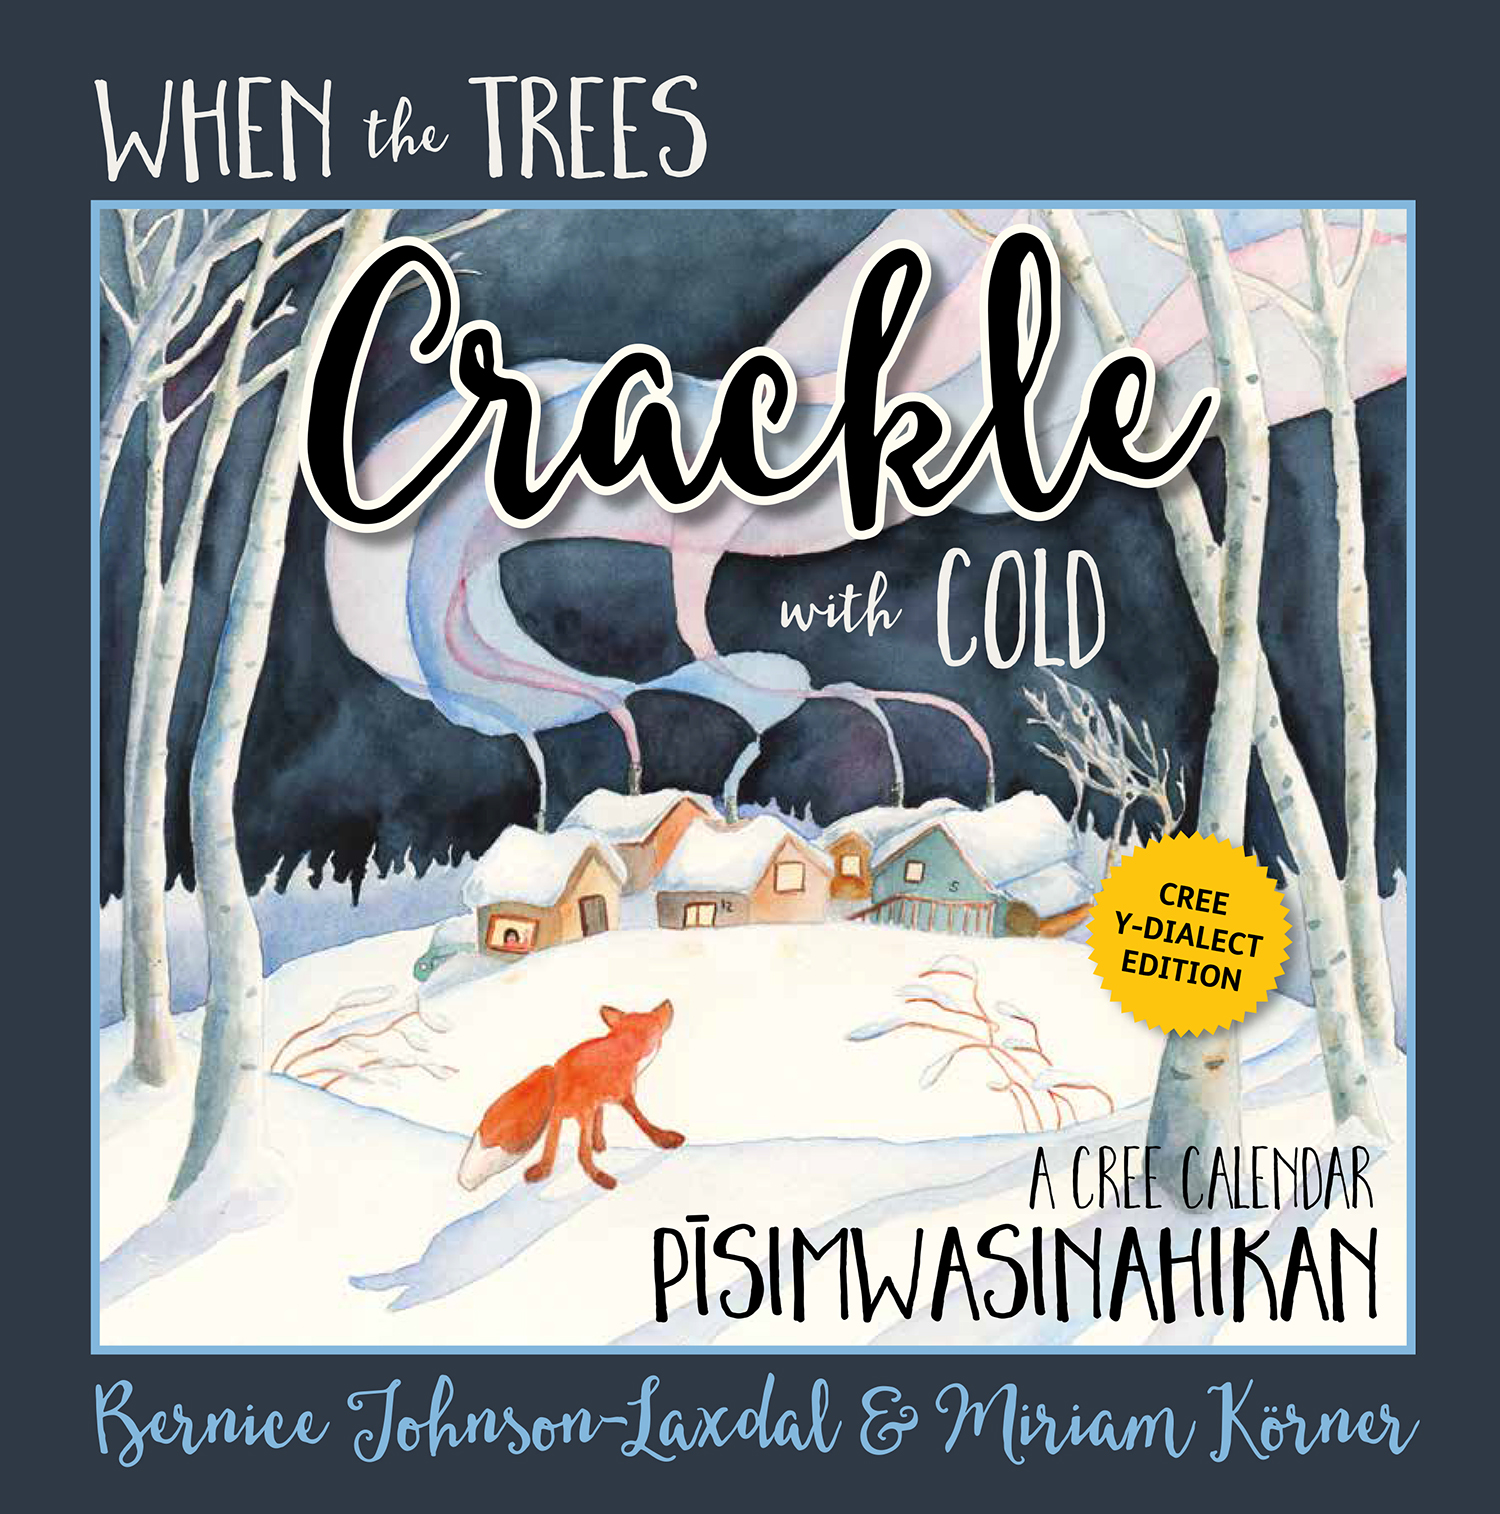 When the Trees Crackle with Cold: A Cree Calendar (ebook)